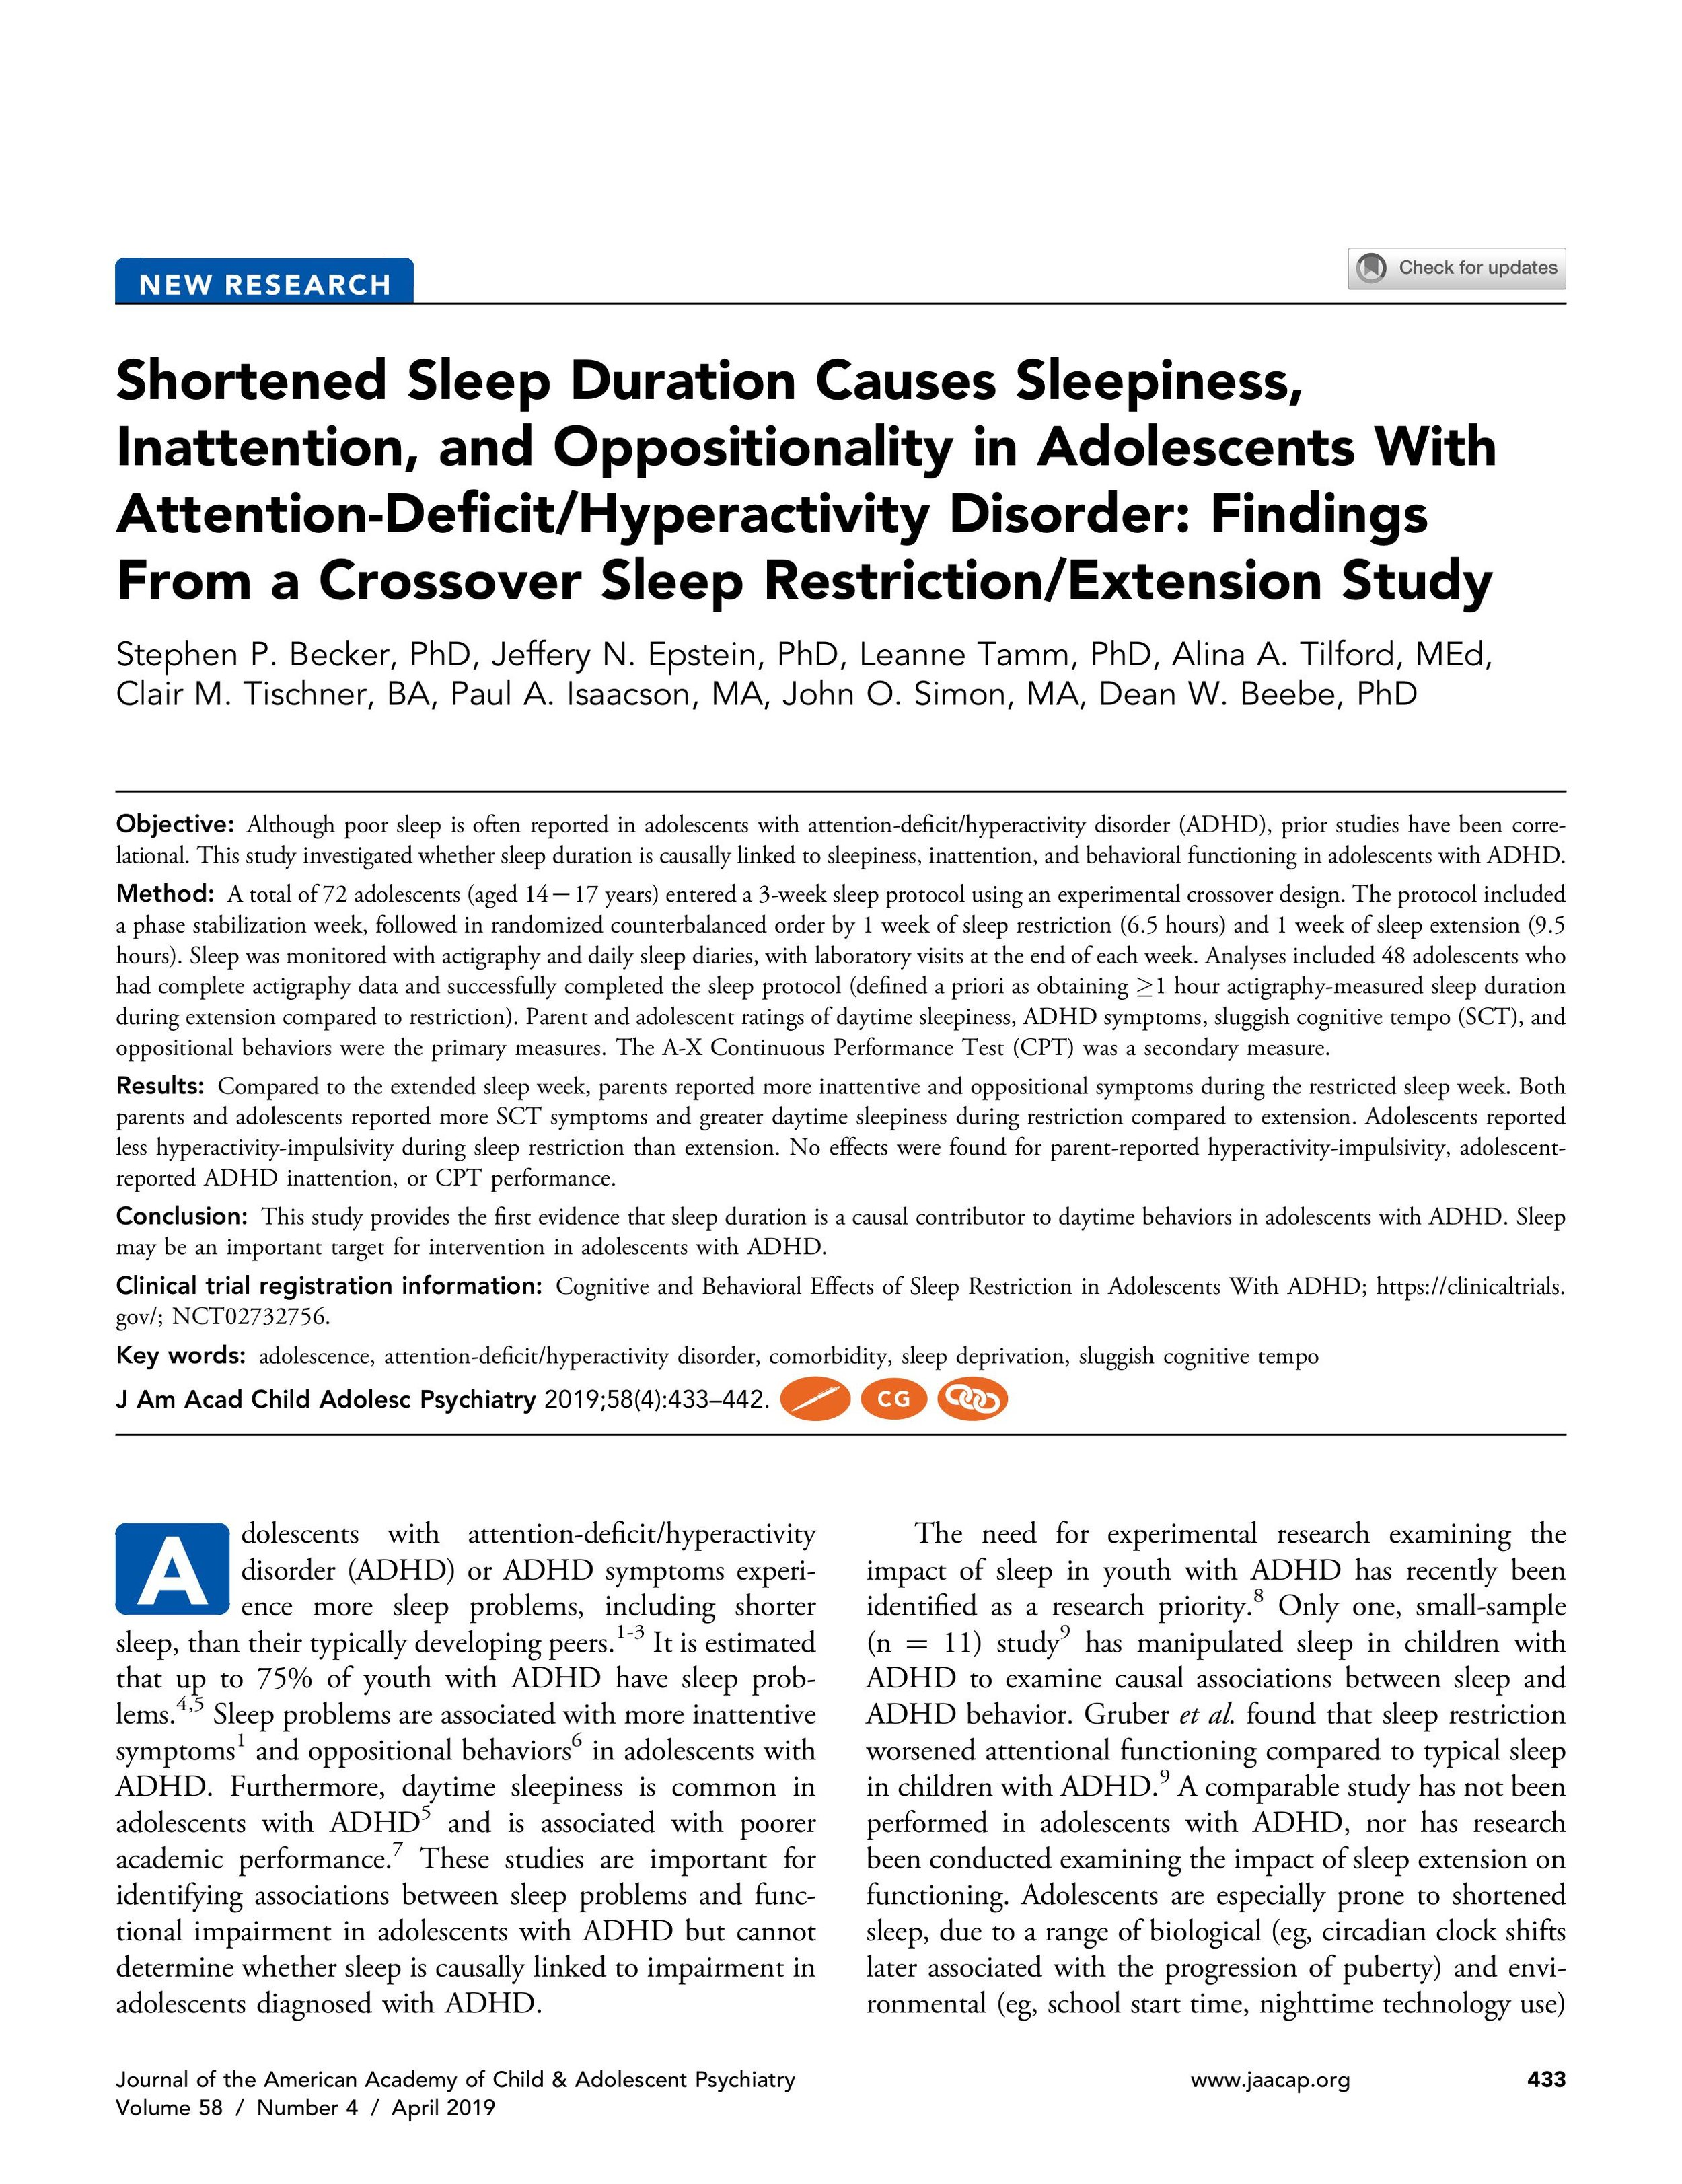 Becker JAACAP 2019 Sleep Restriction.jpg